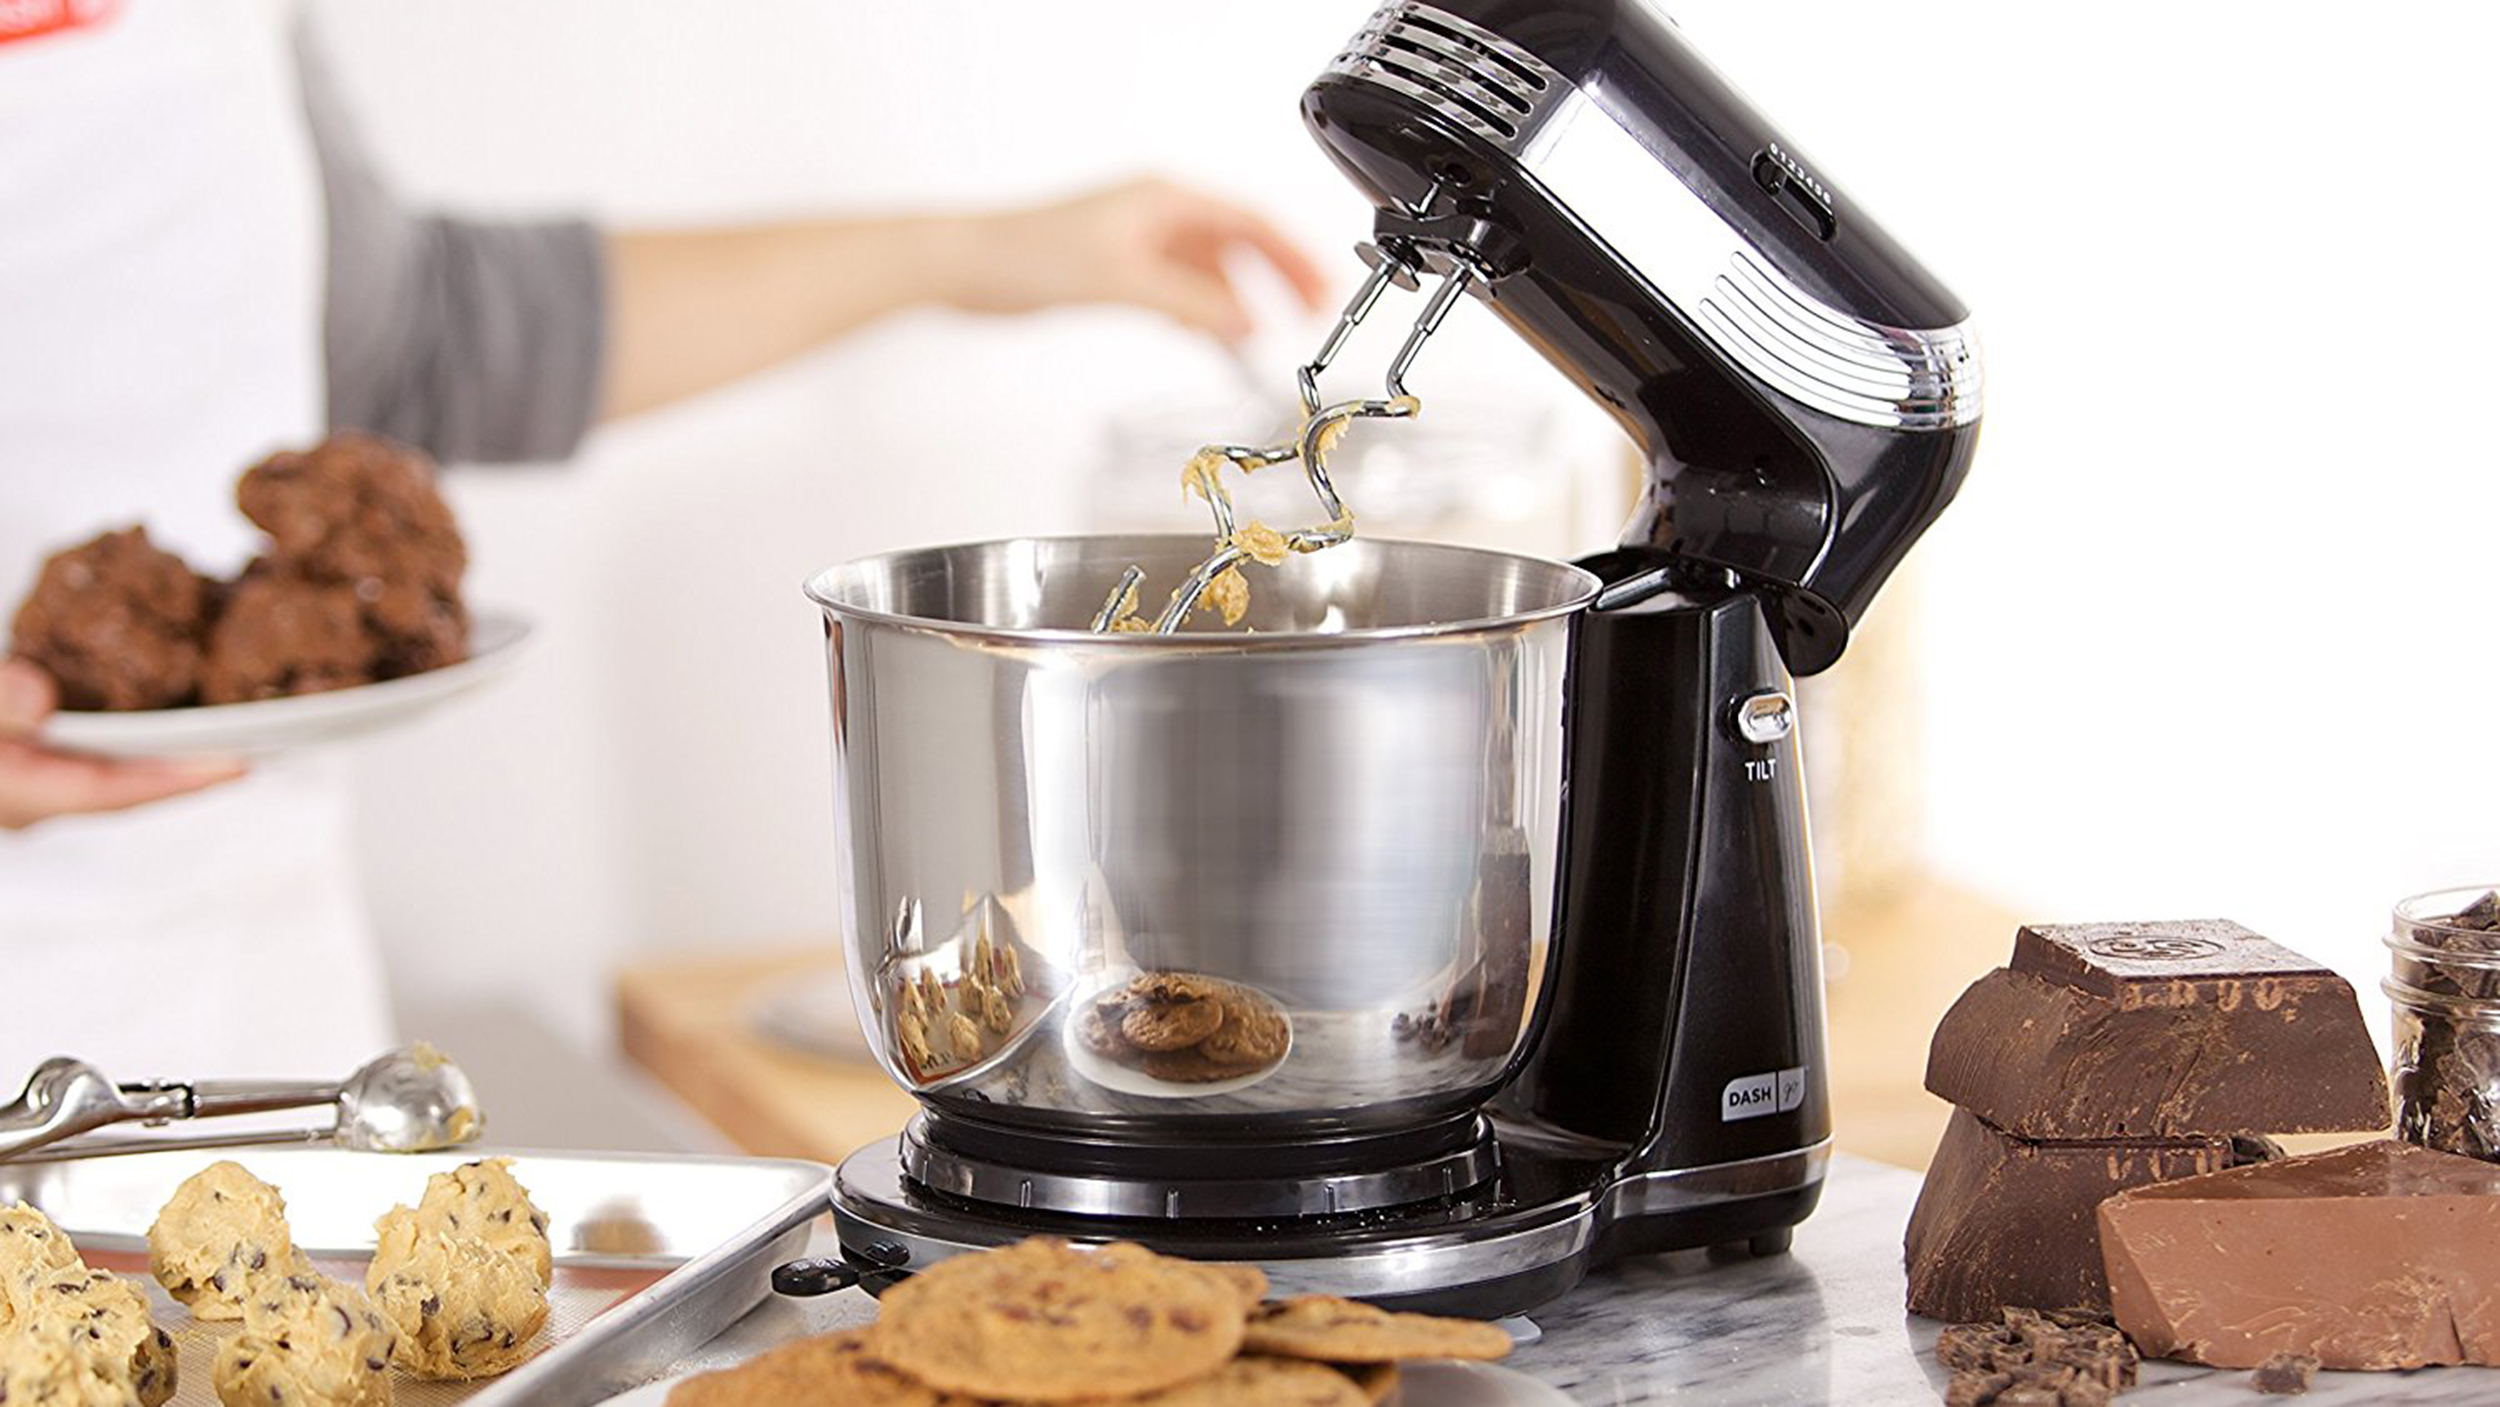 The Best Affordable Stand Mixer Is The Dash Everyday Mixer   TODAY.com